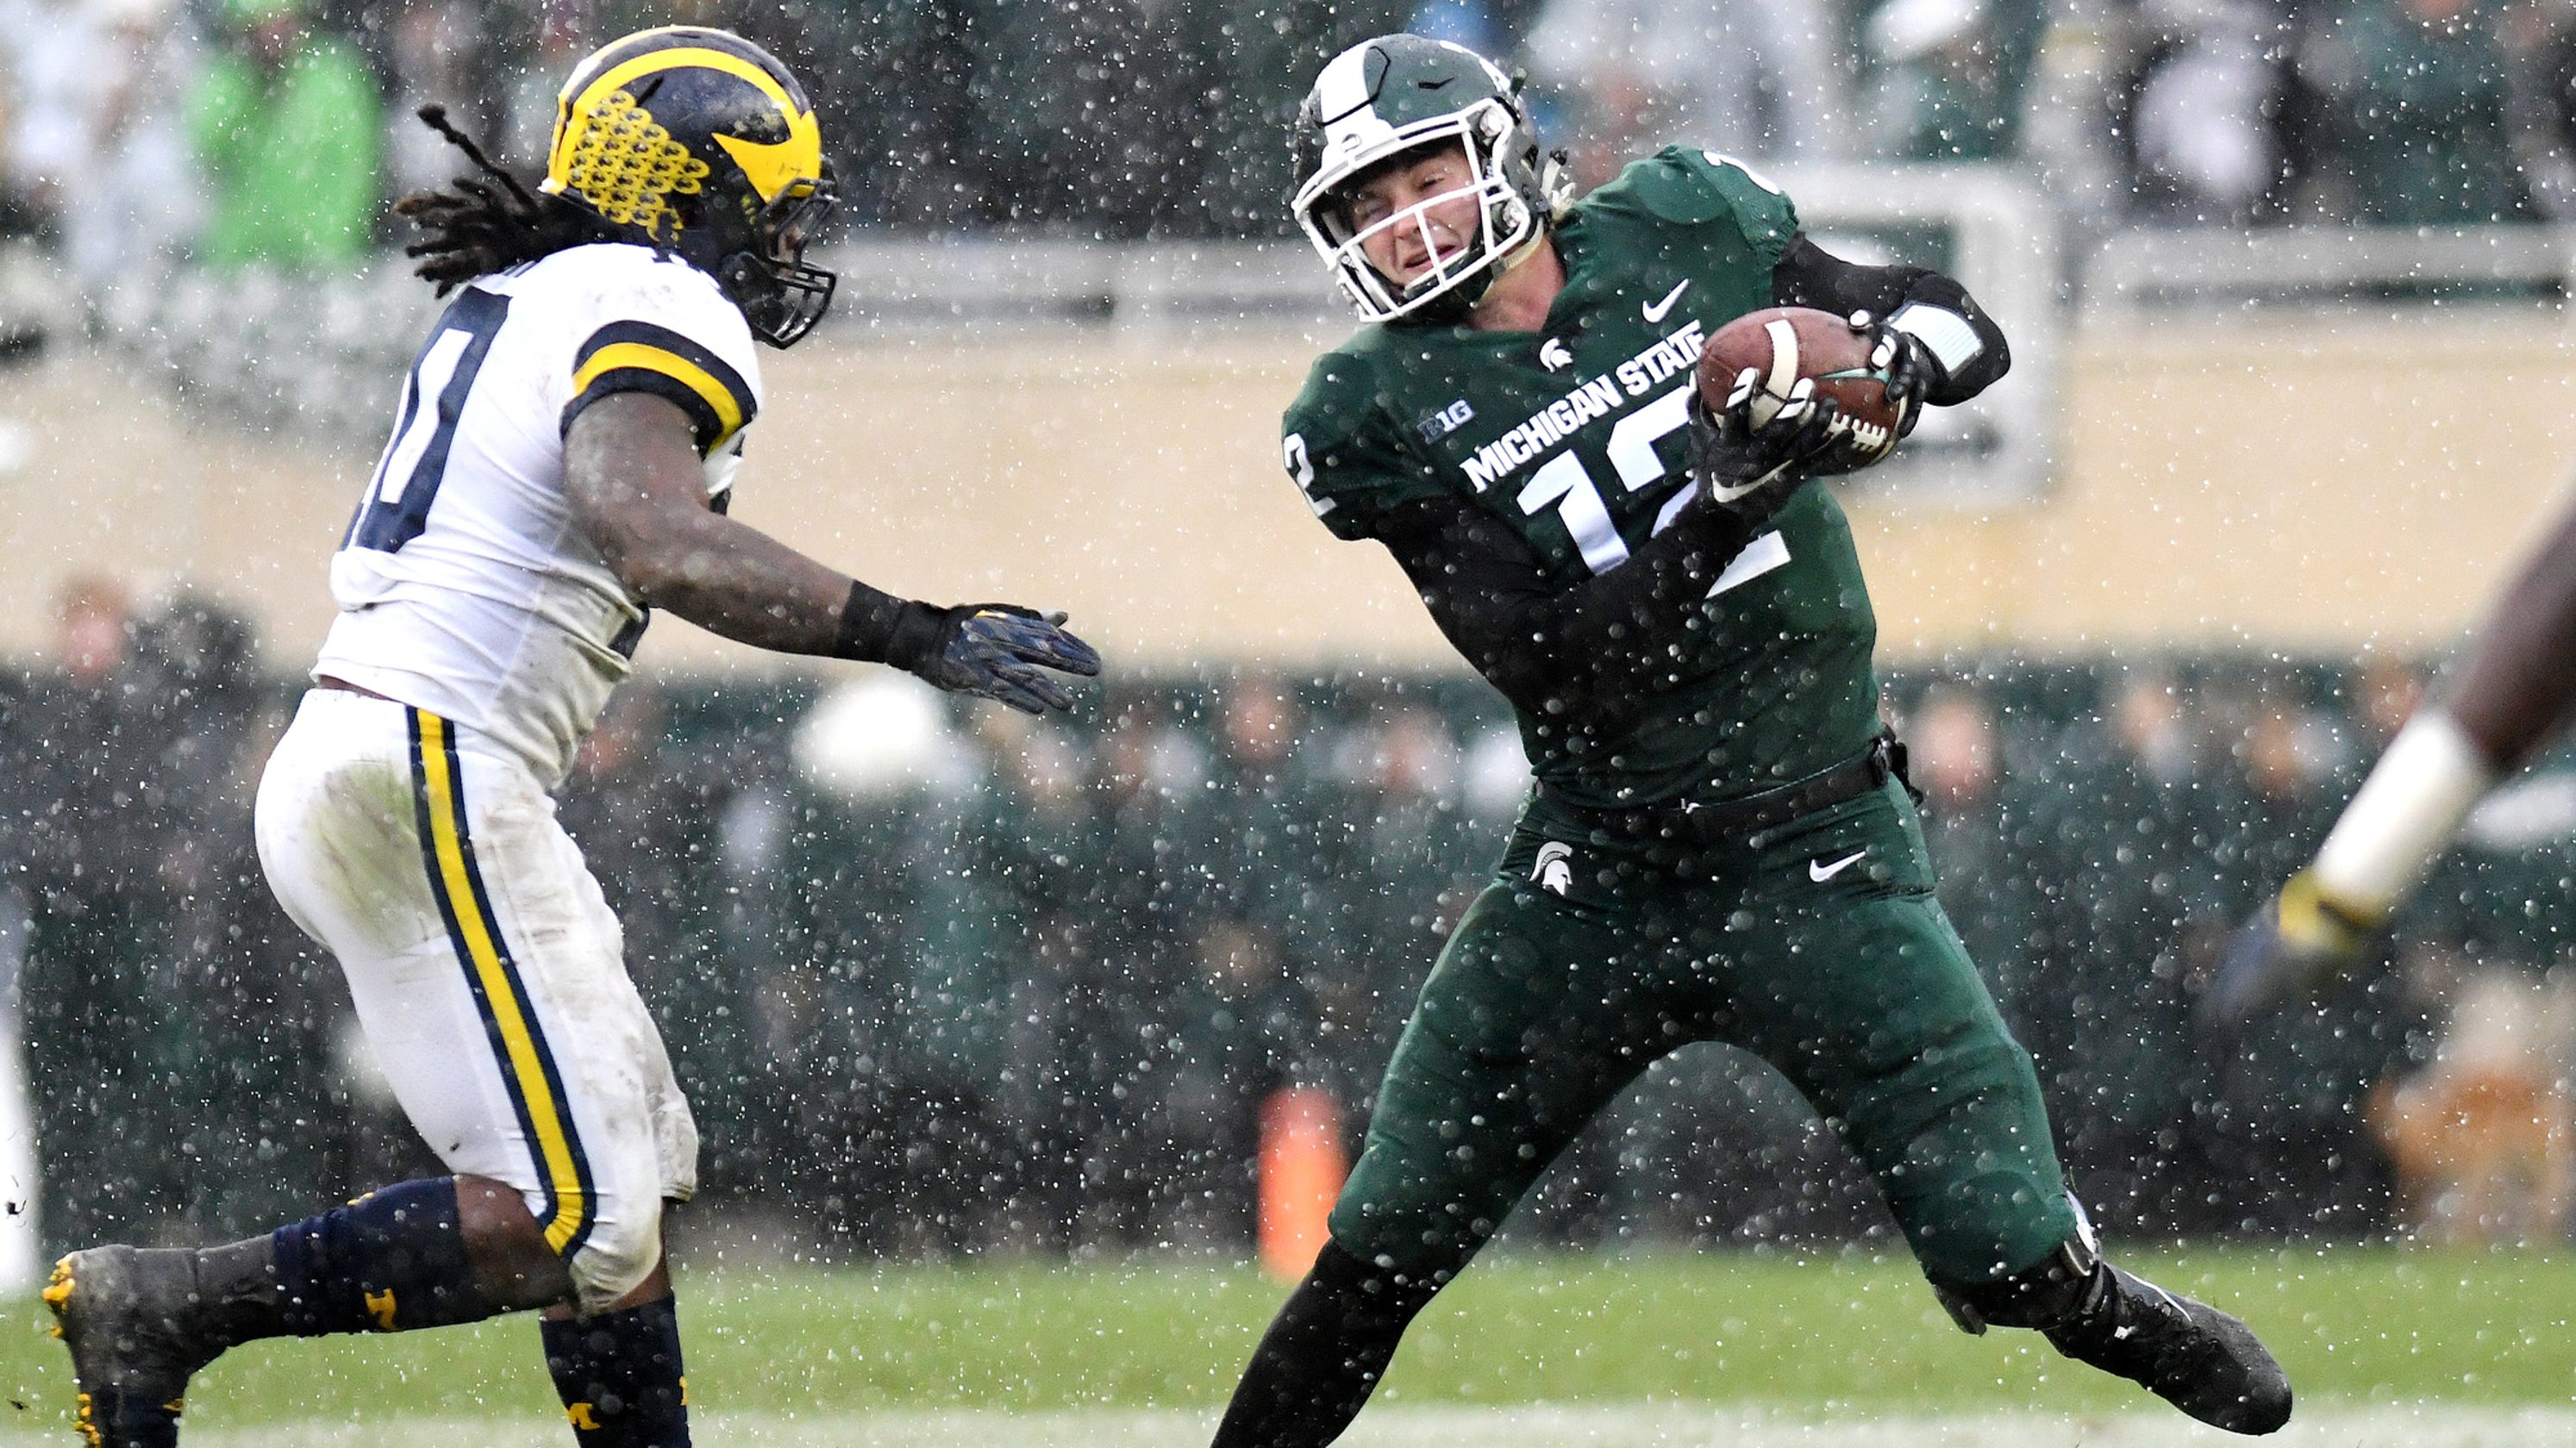 michigan state s rocky lombardi comes from a football family